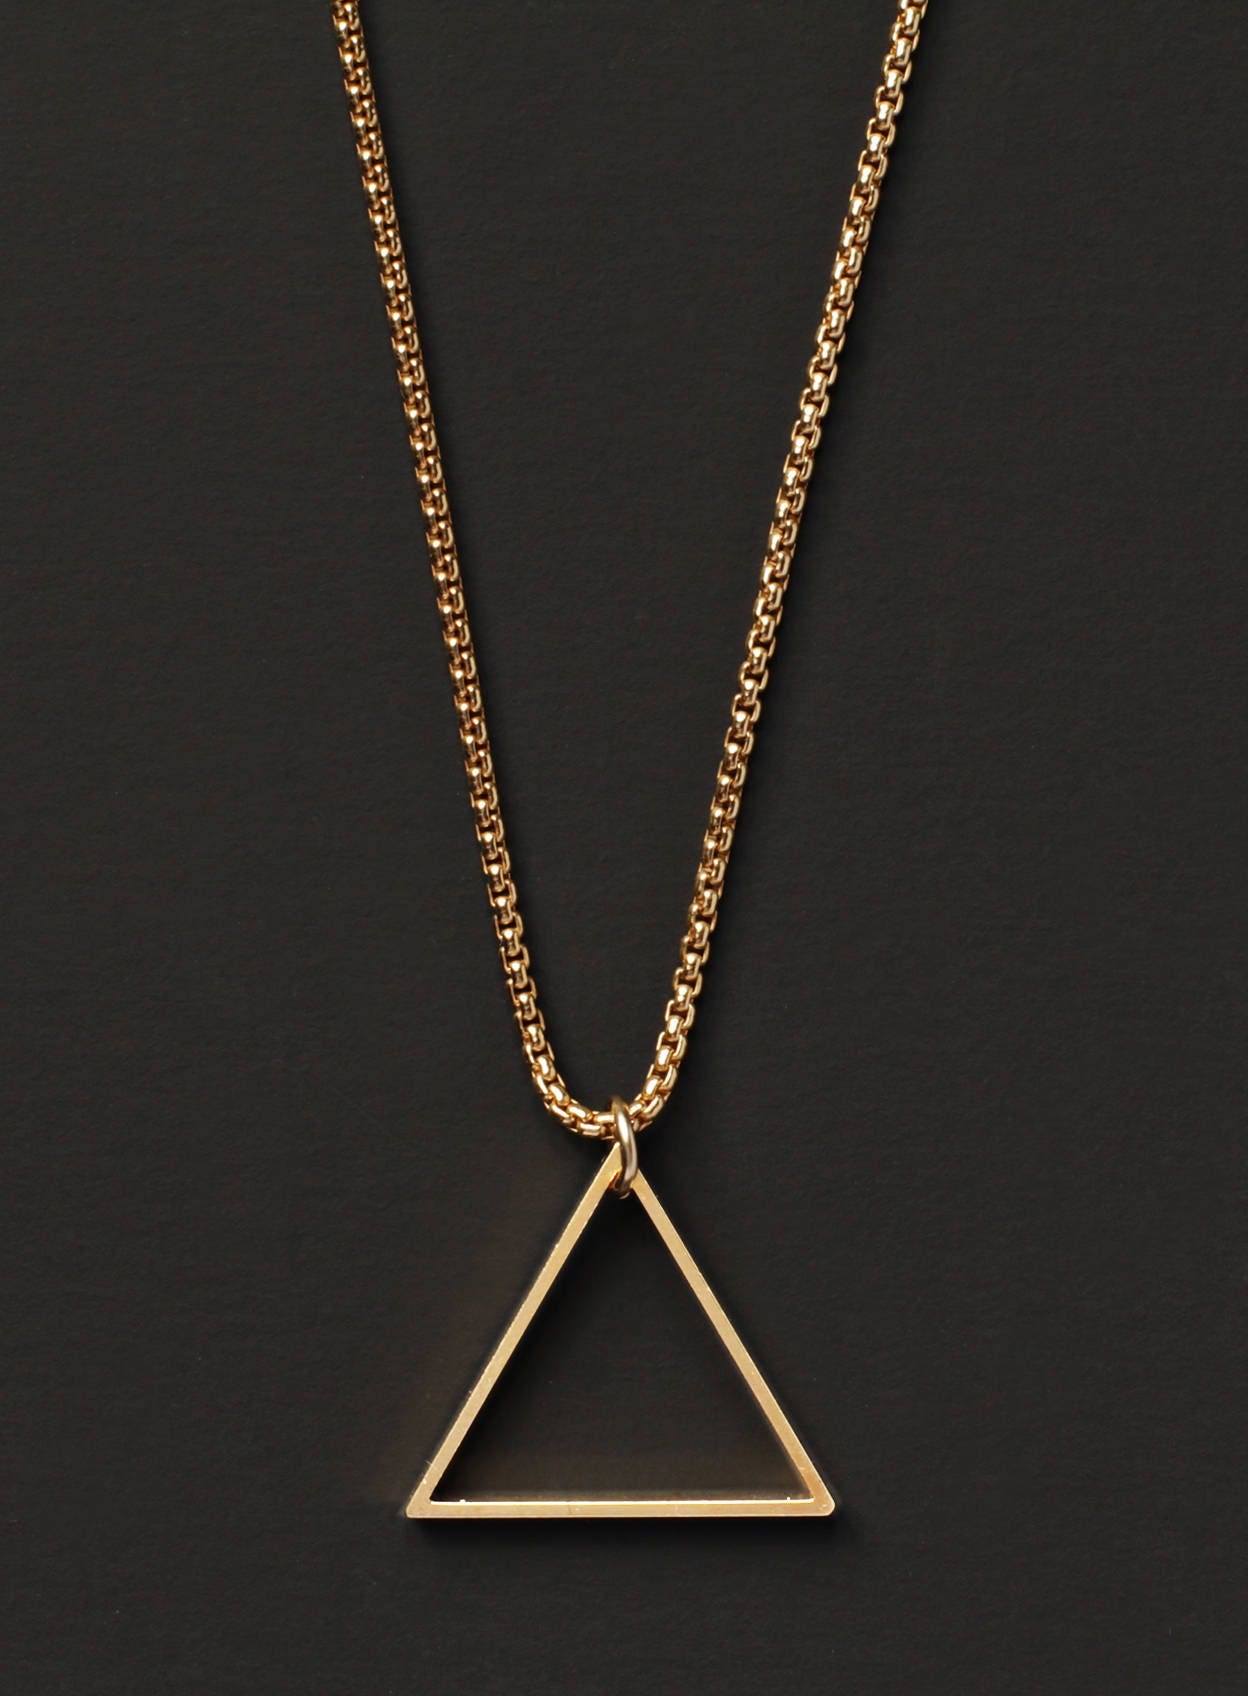 Gold chain and triangle necklace for men Gold triangle